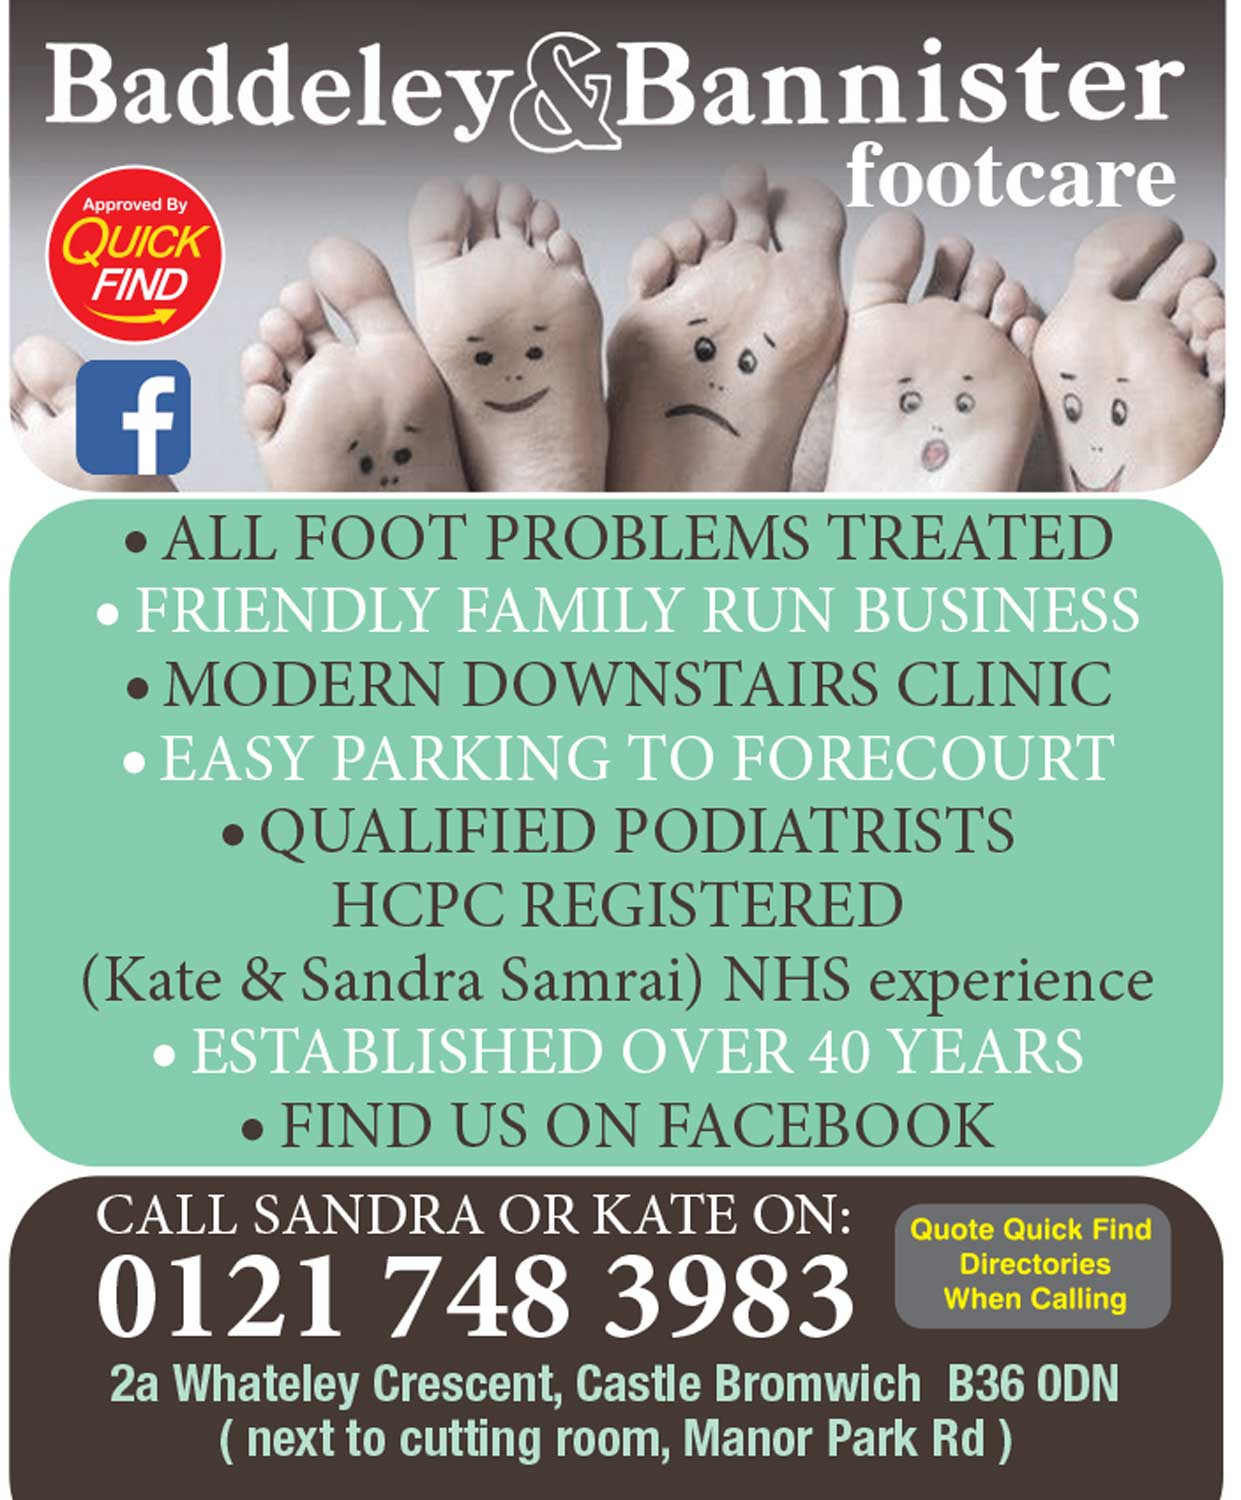 Baddeley & Bannister Footcare